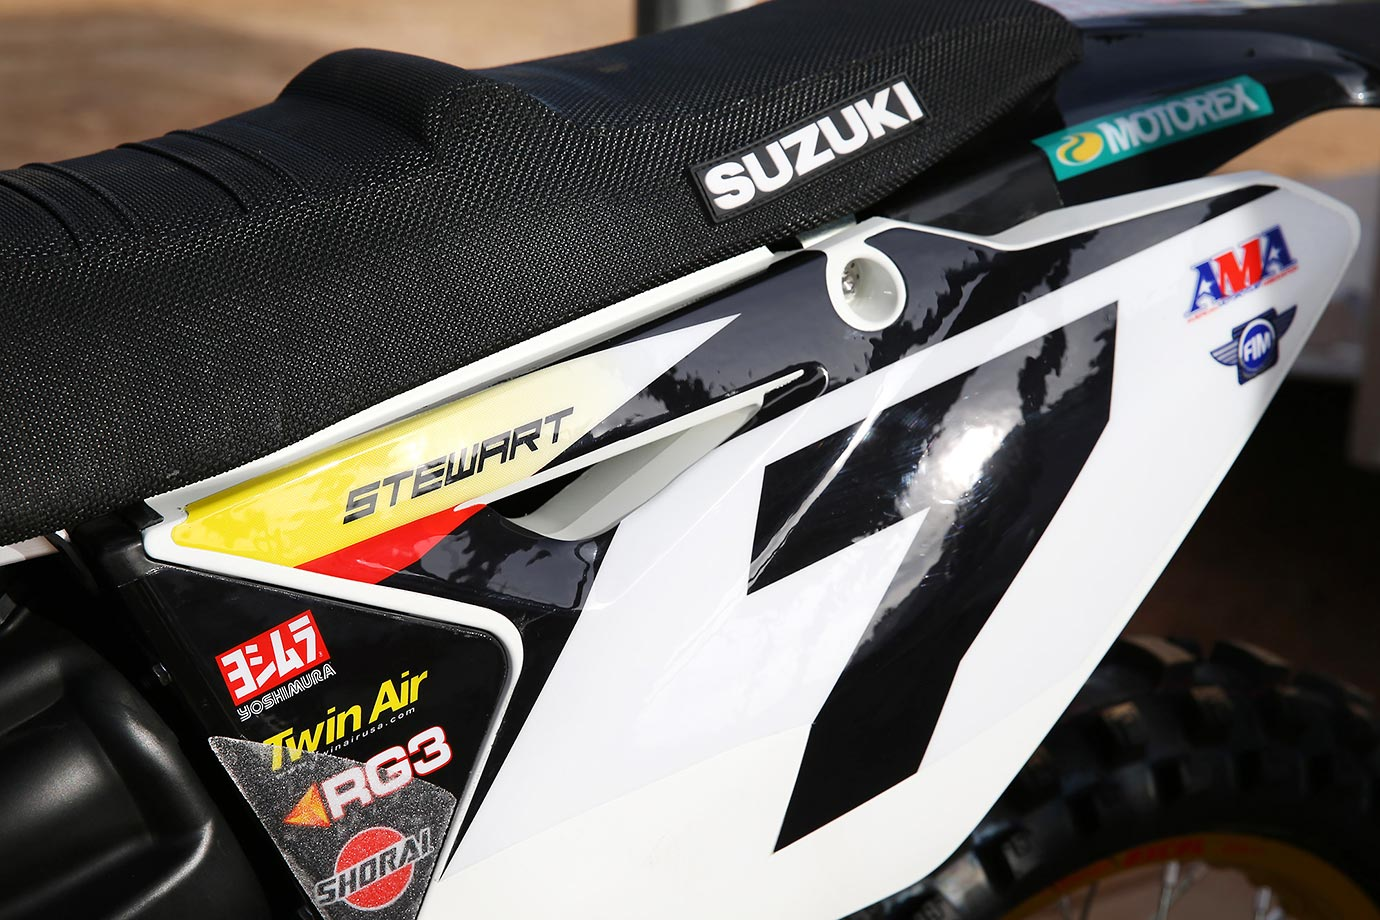 Detail shot of Supercross rider James Stewart's Suzuki racing bike.